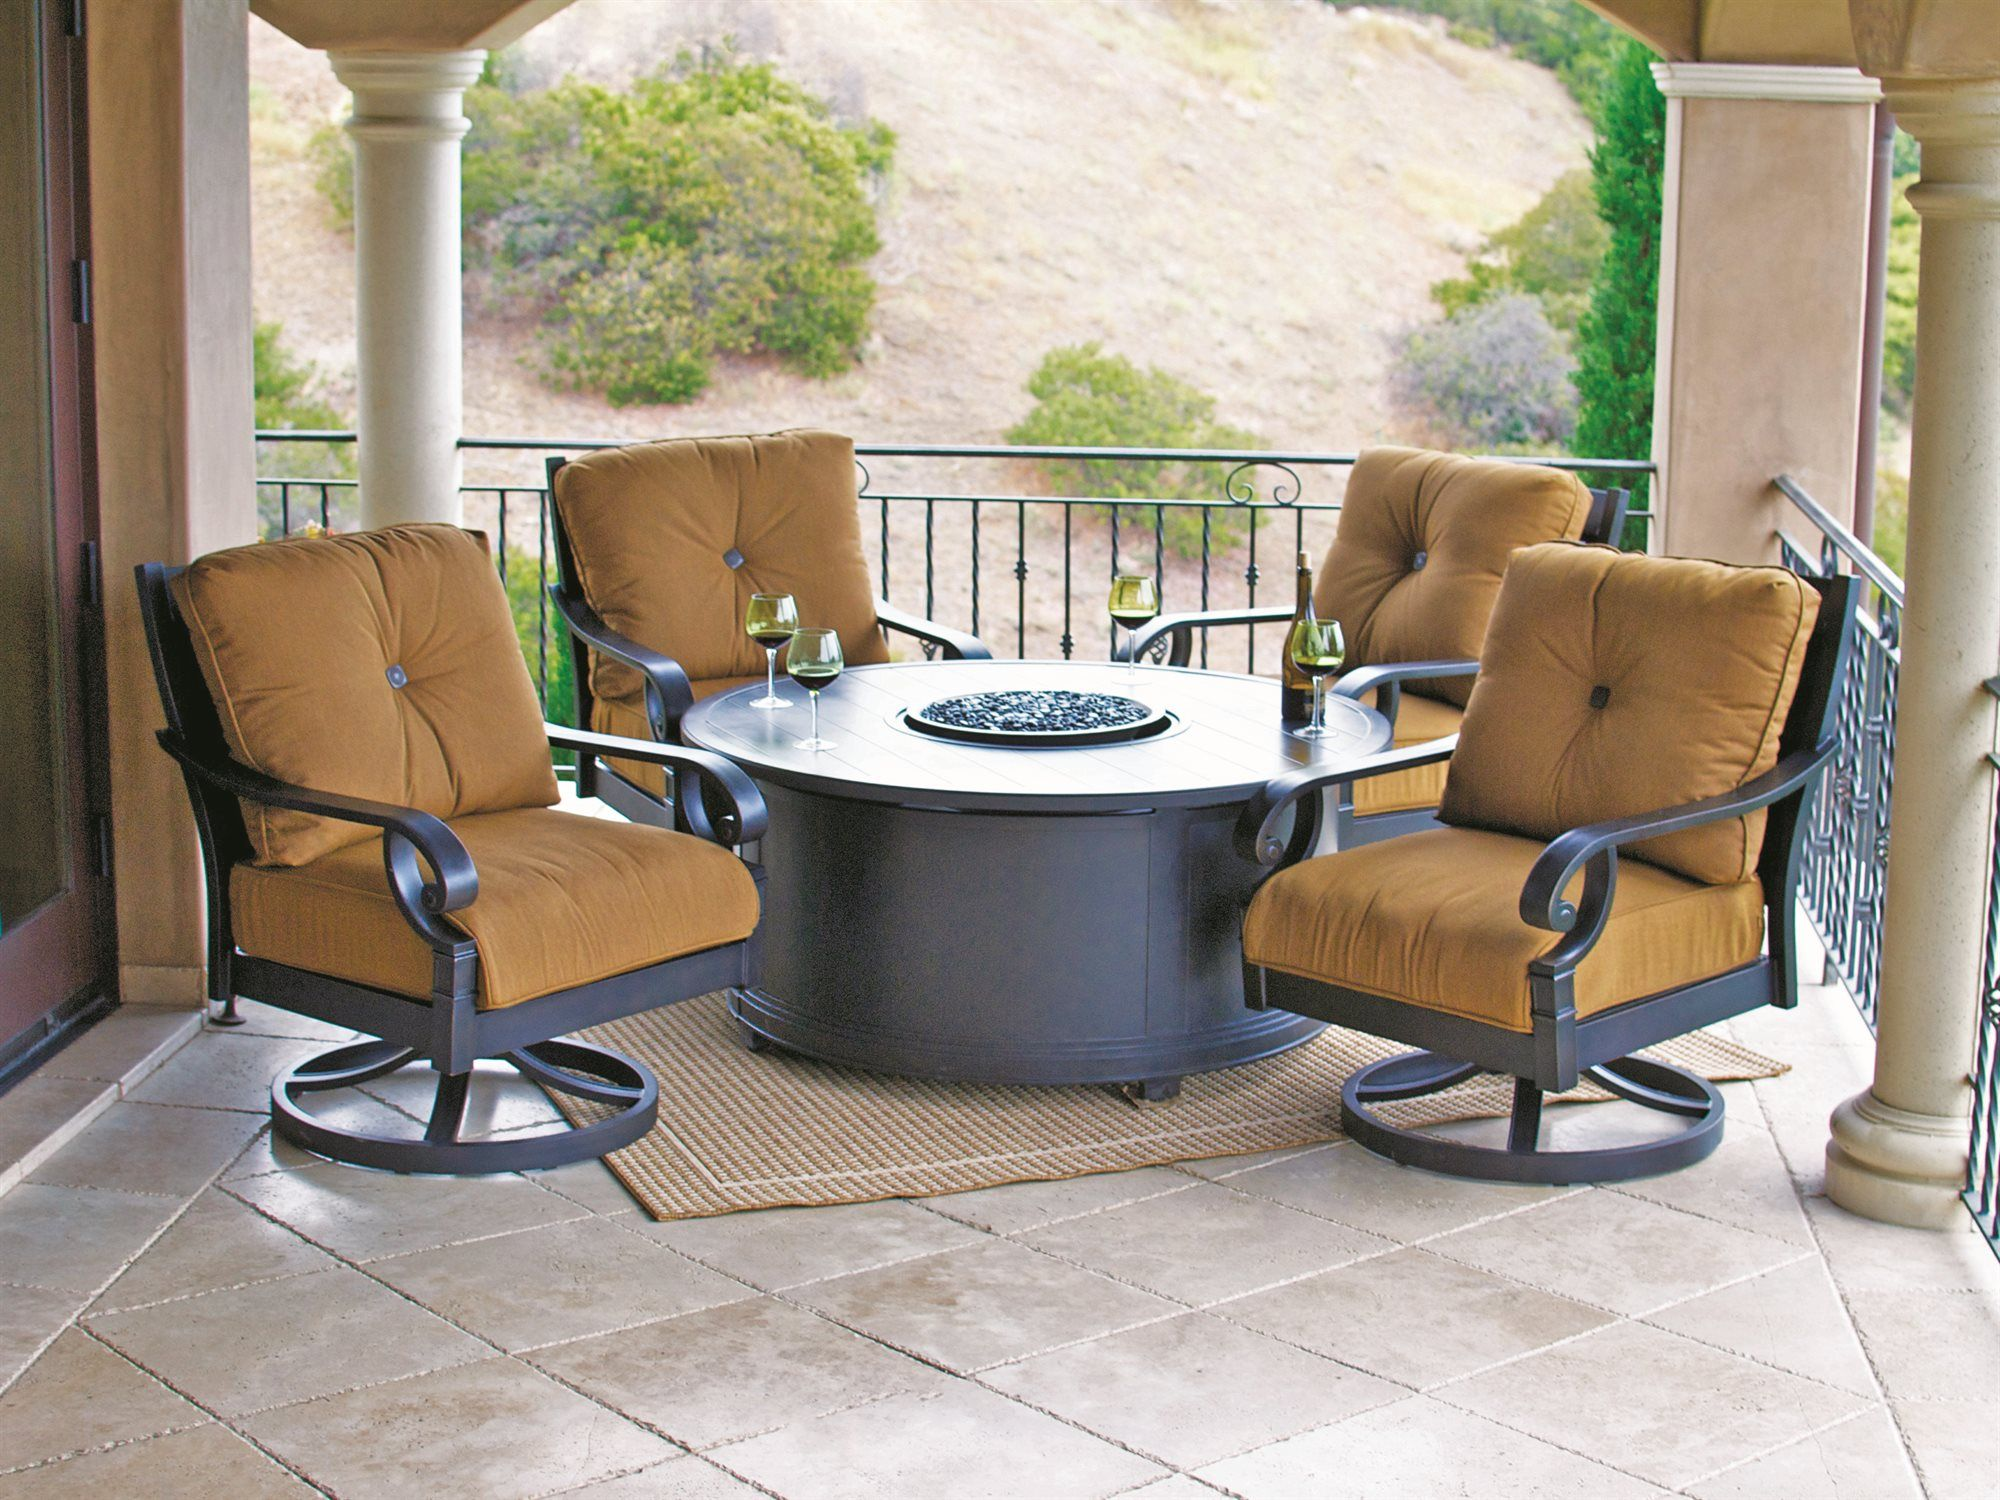 5923a838eded97d90f017e1fe825132b Top Result 50 Awesome Fire Pit Table and Chairs